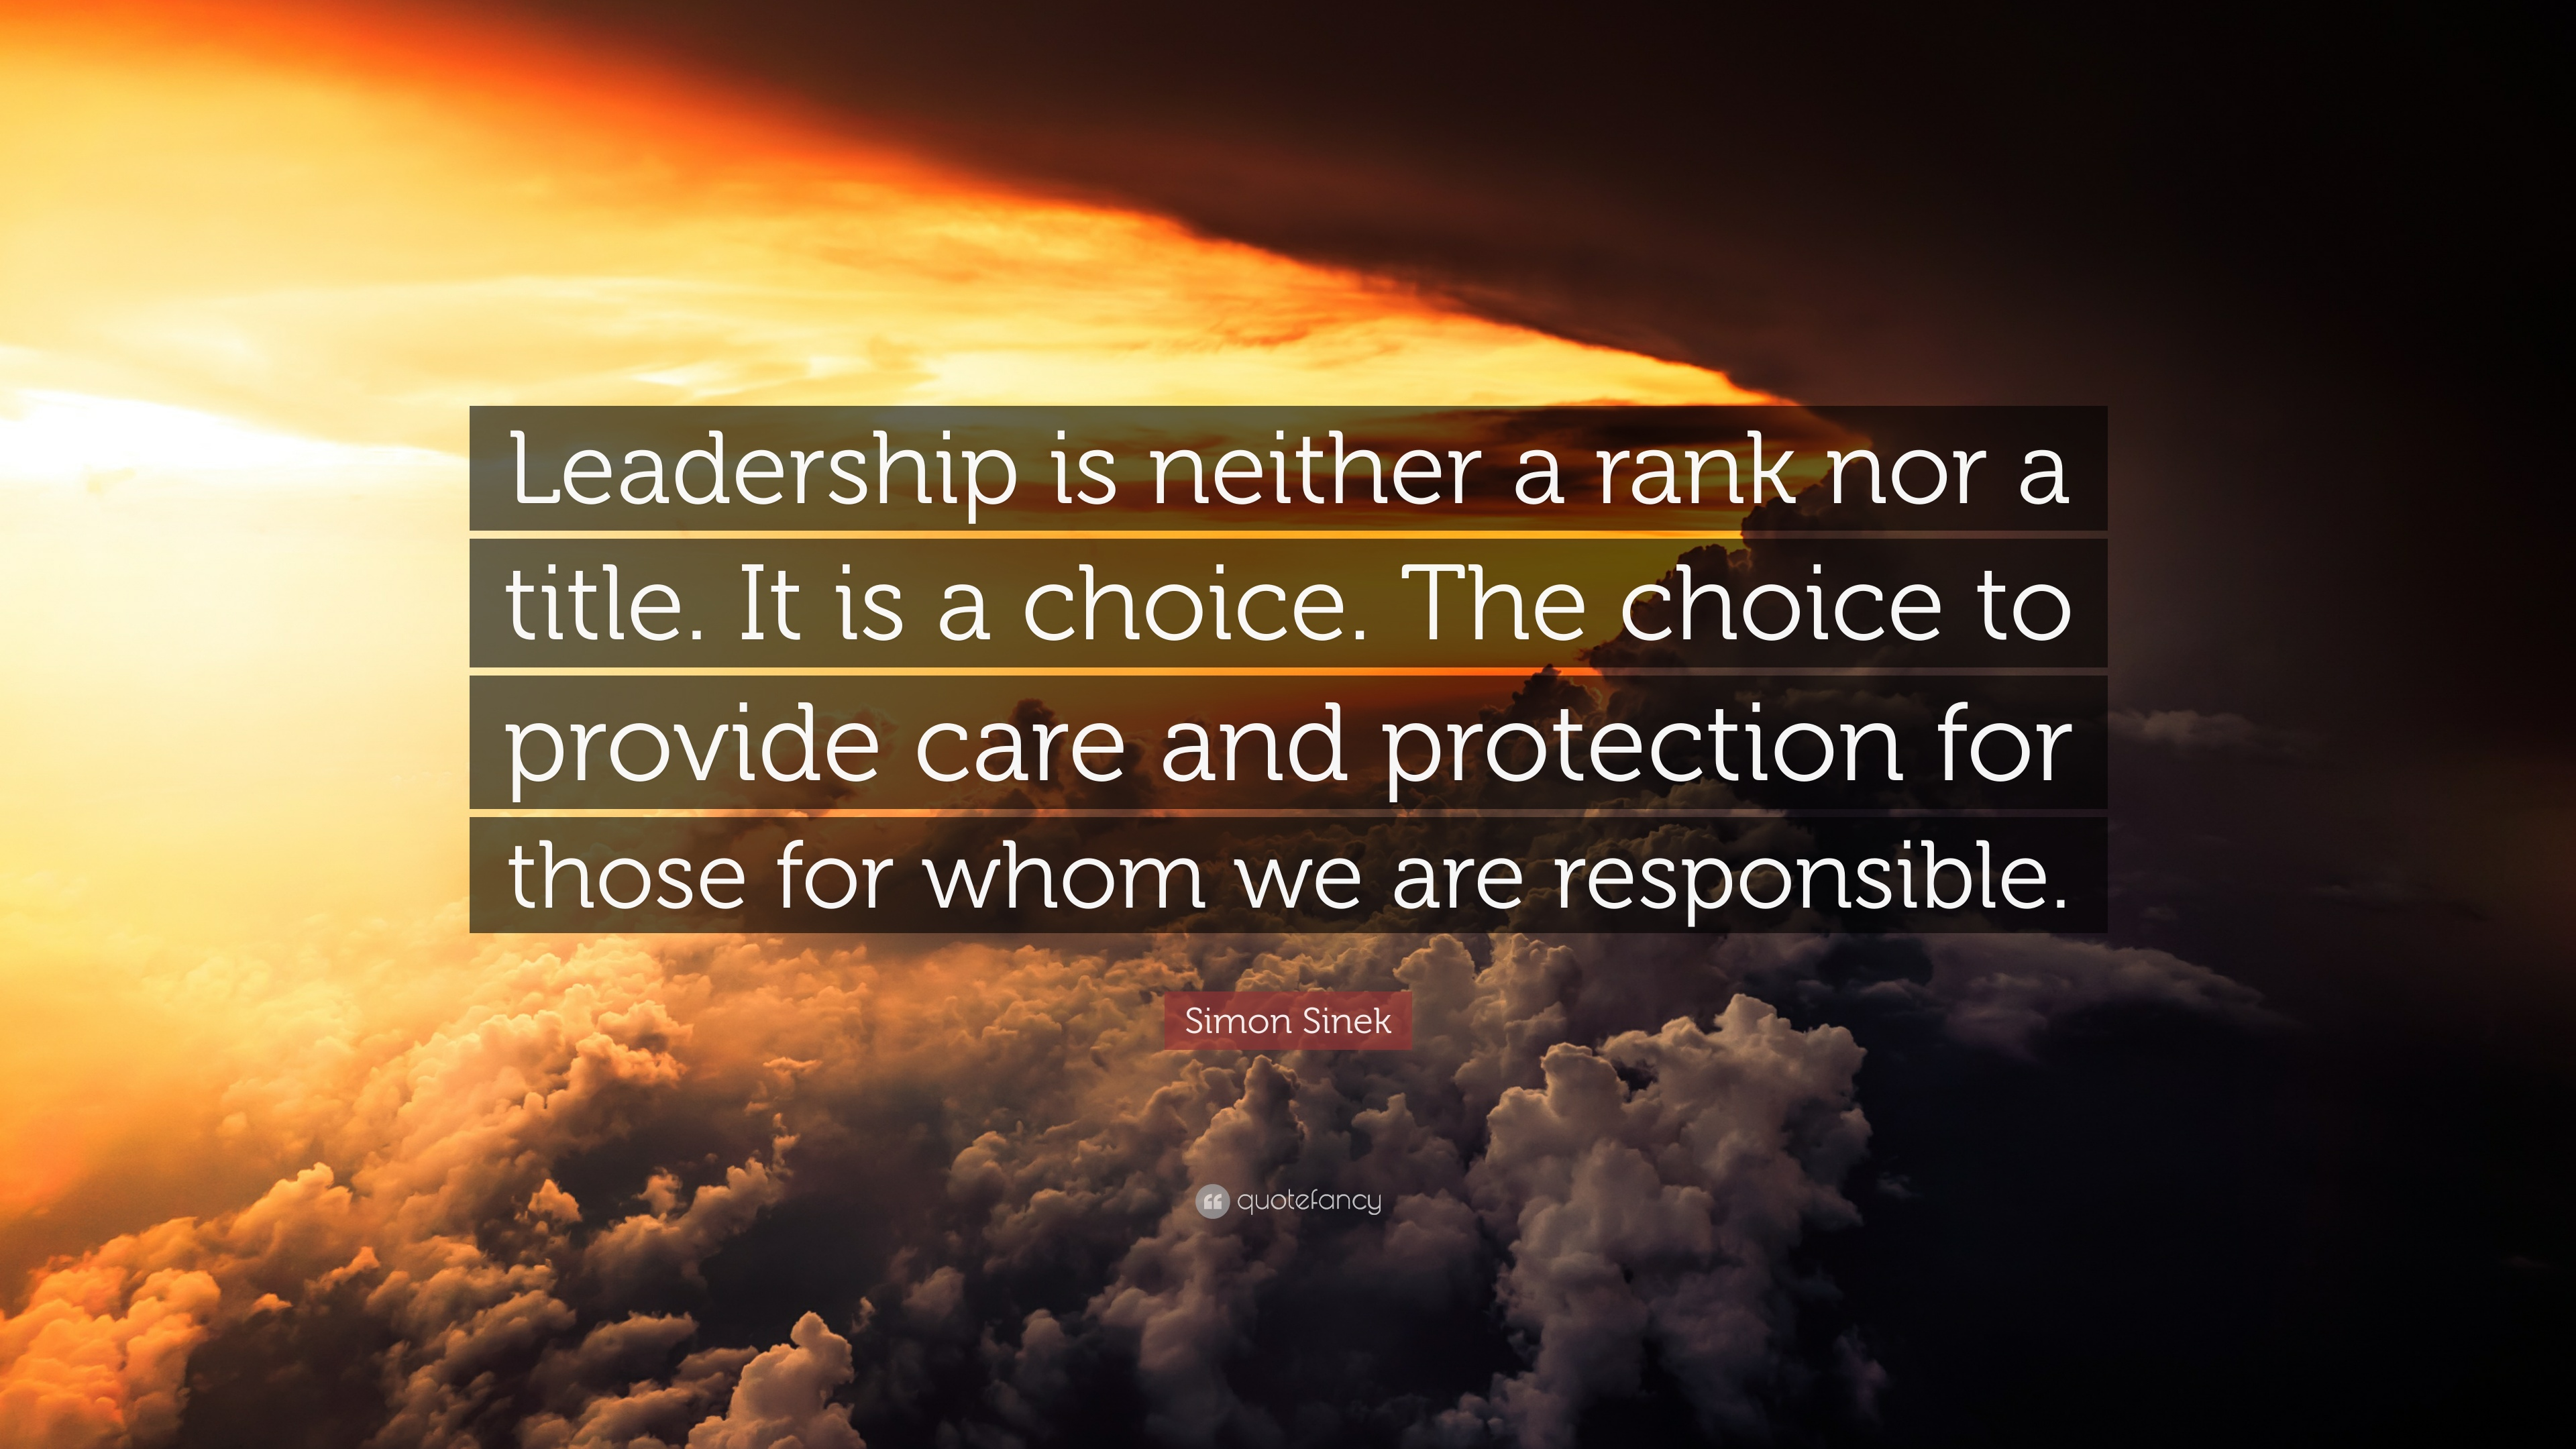 Simon Sinek Quote Leadership Is Neither A Rank Nor A Title It Is